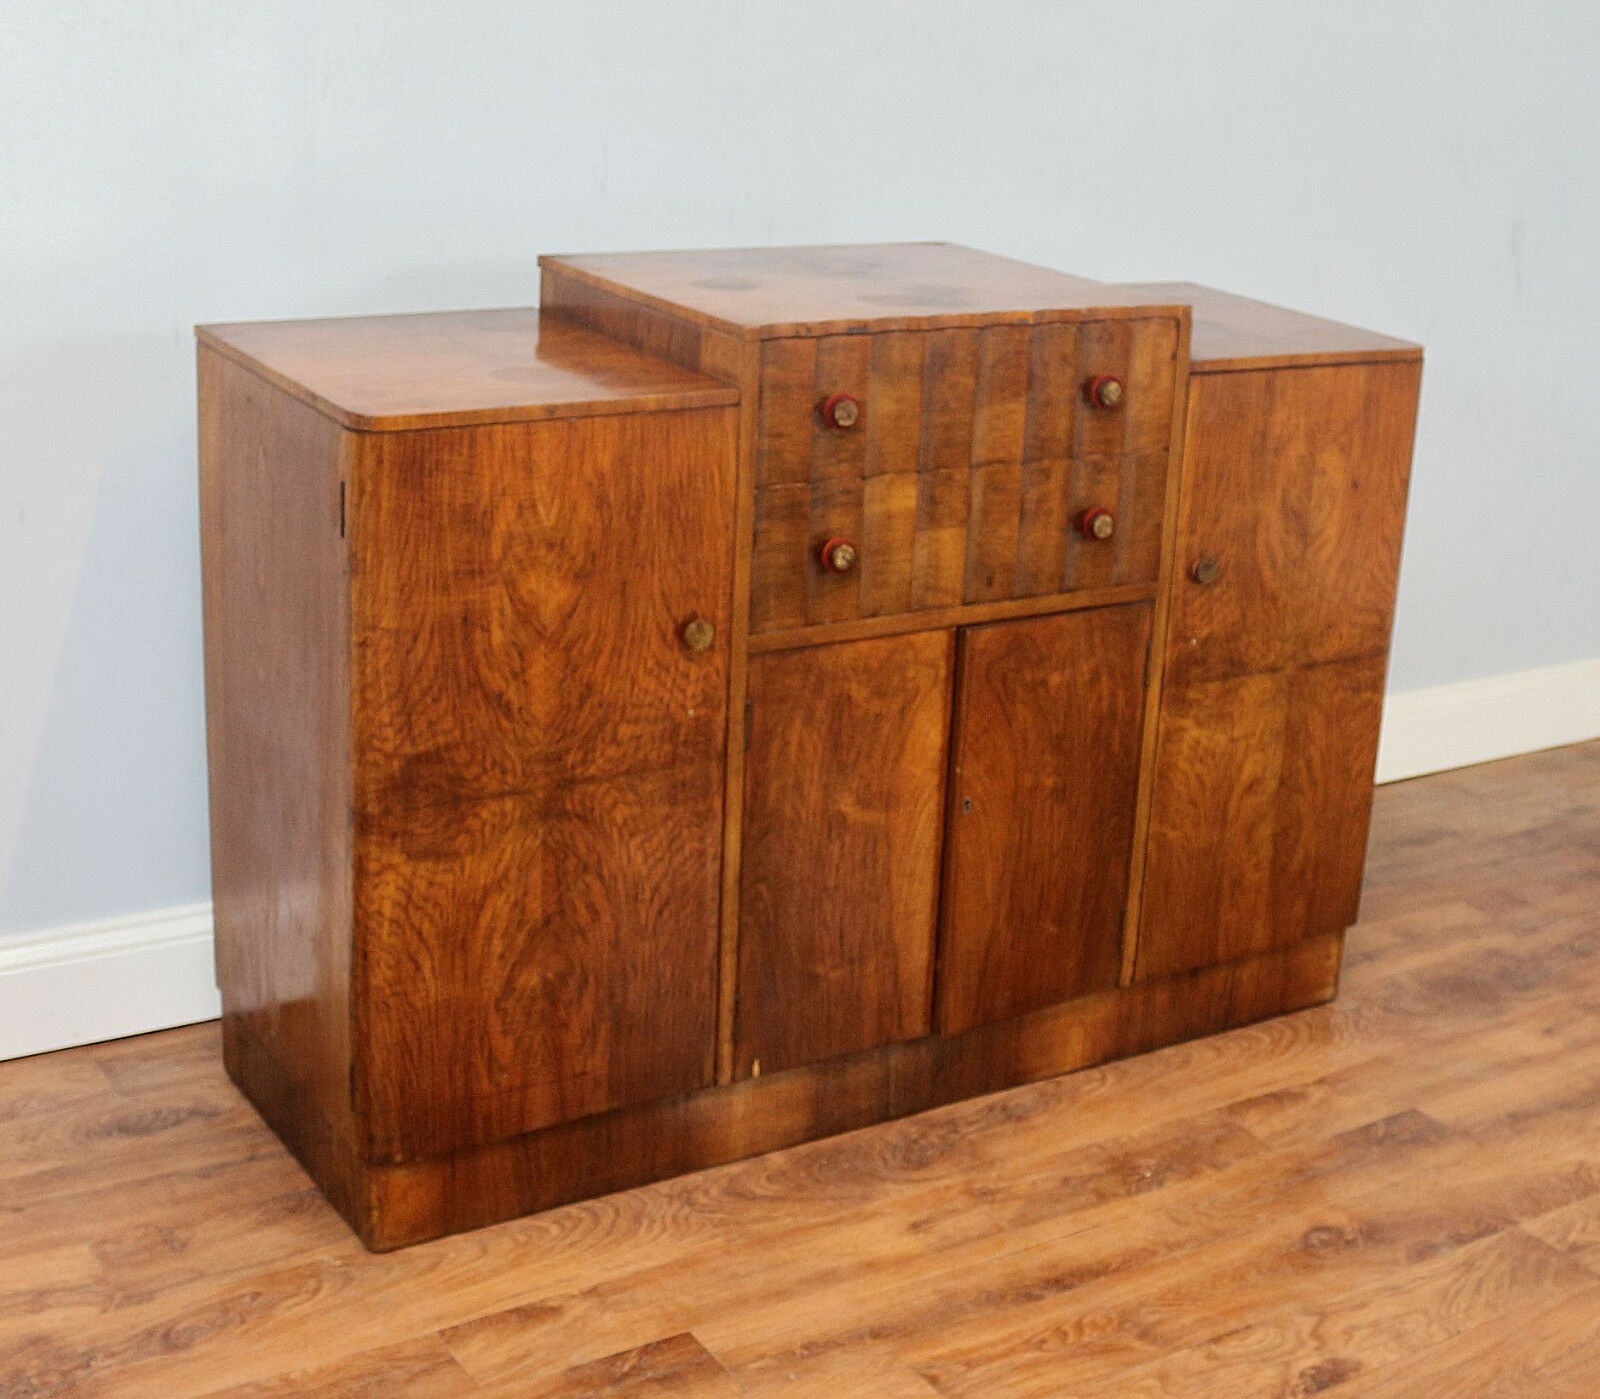 art deco walnut sideboard vintage storage lounge dining room kitchen cabinet. Black Bedroom Furniture Sets. Home Design Ideas